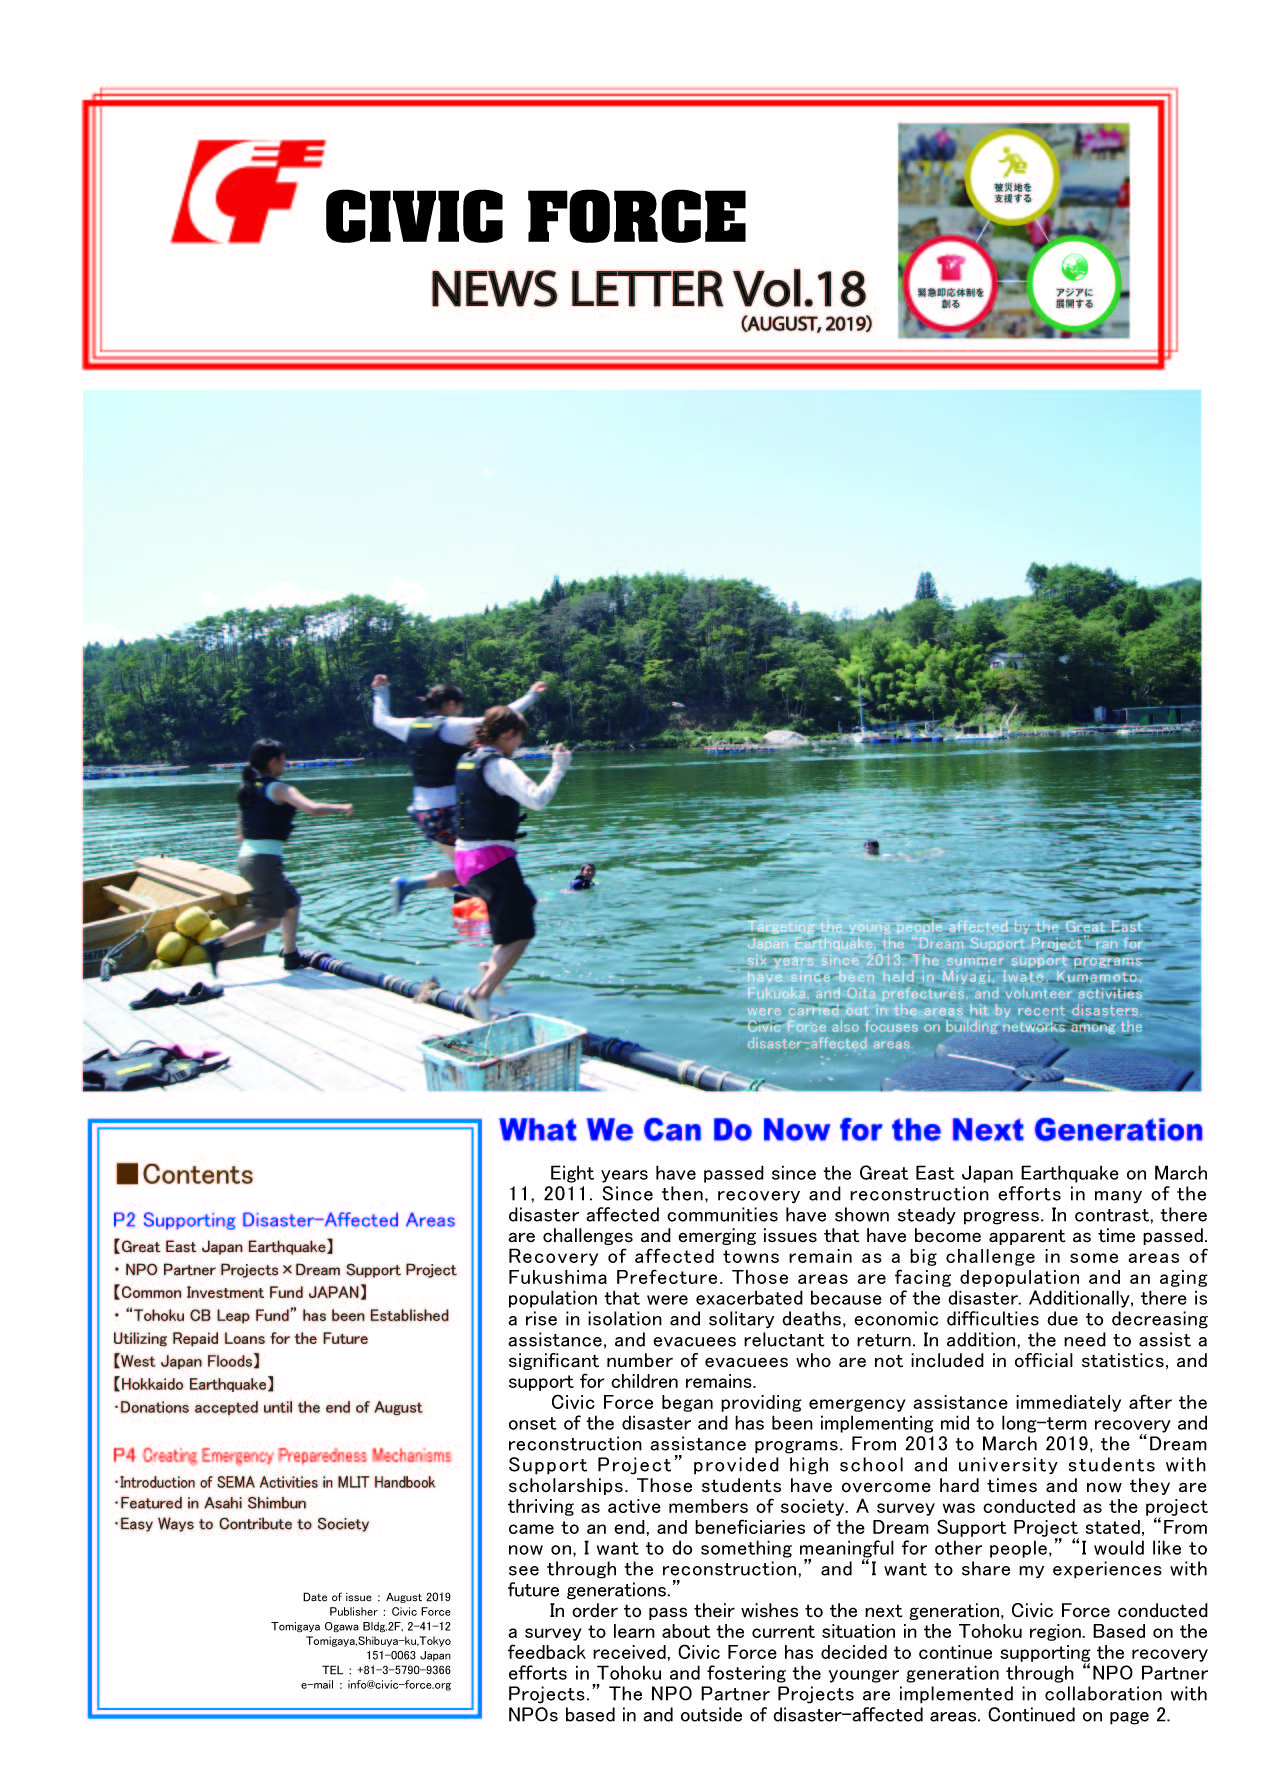 NewsLetter Vol.18eng-01.jpg